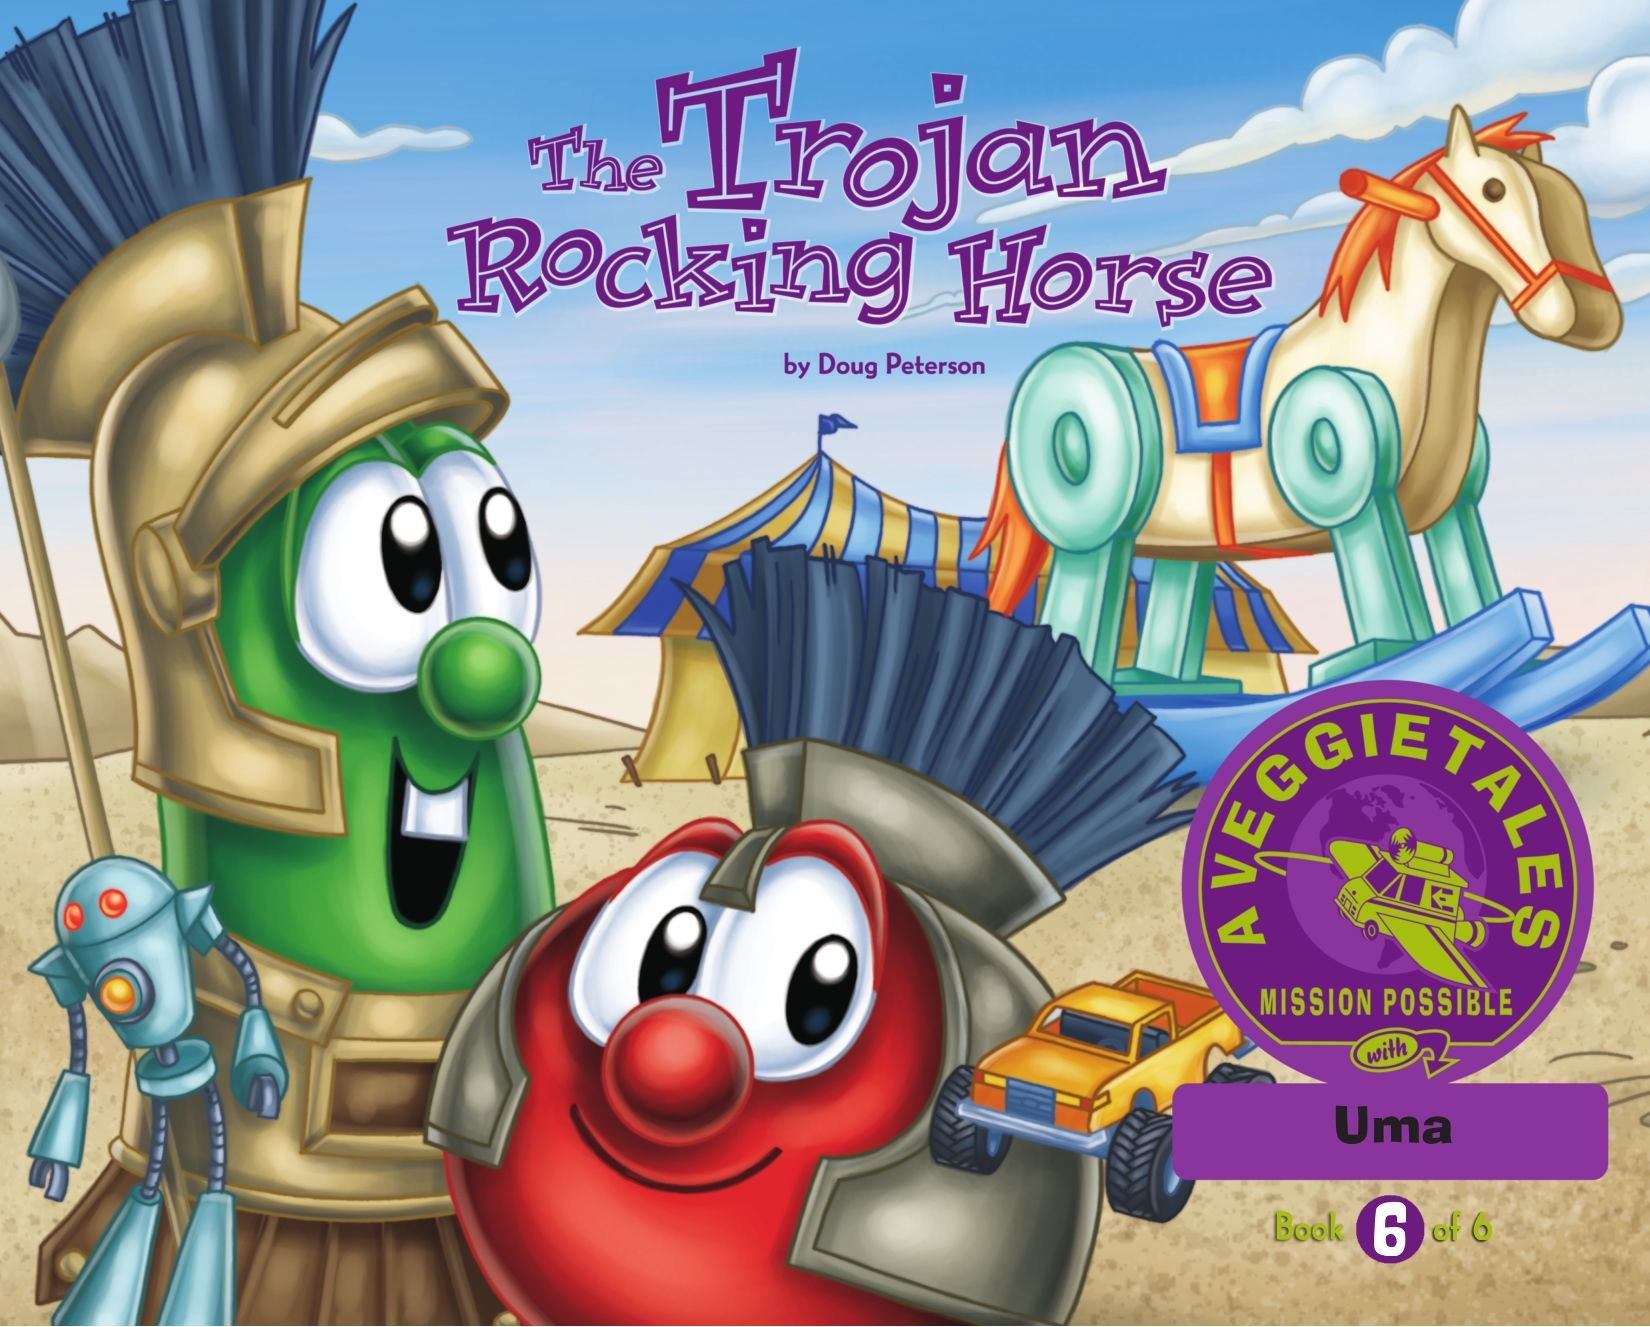 The Trojan Rocking Horse - VeggieTales Mission Possible Adventure Series #6: Personalized for Uma (Boy) ebook